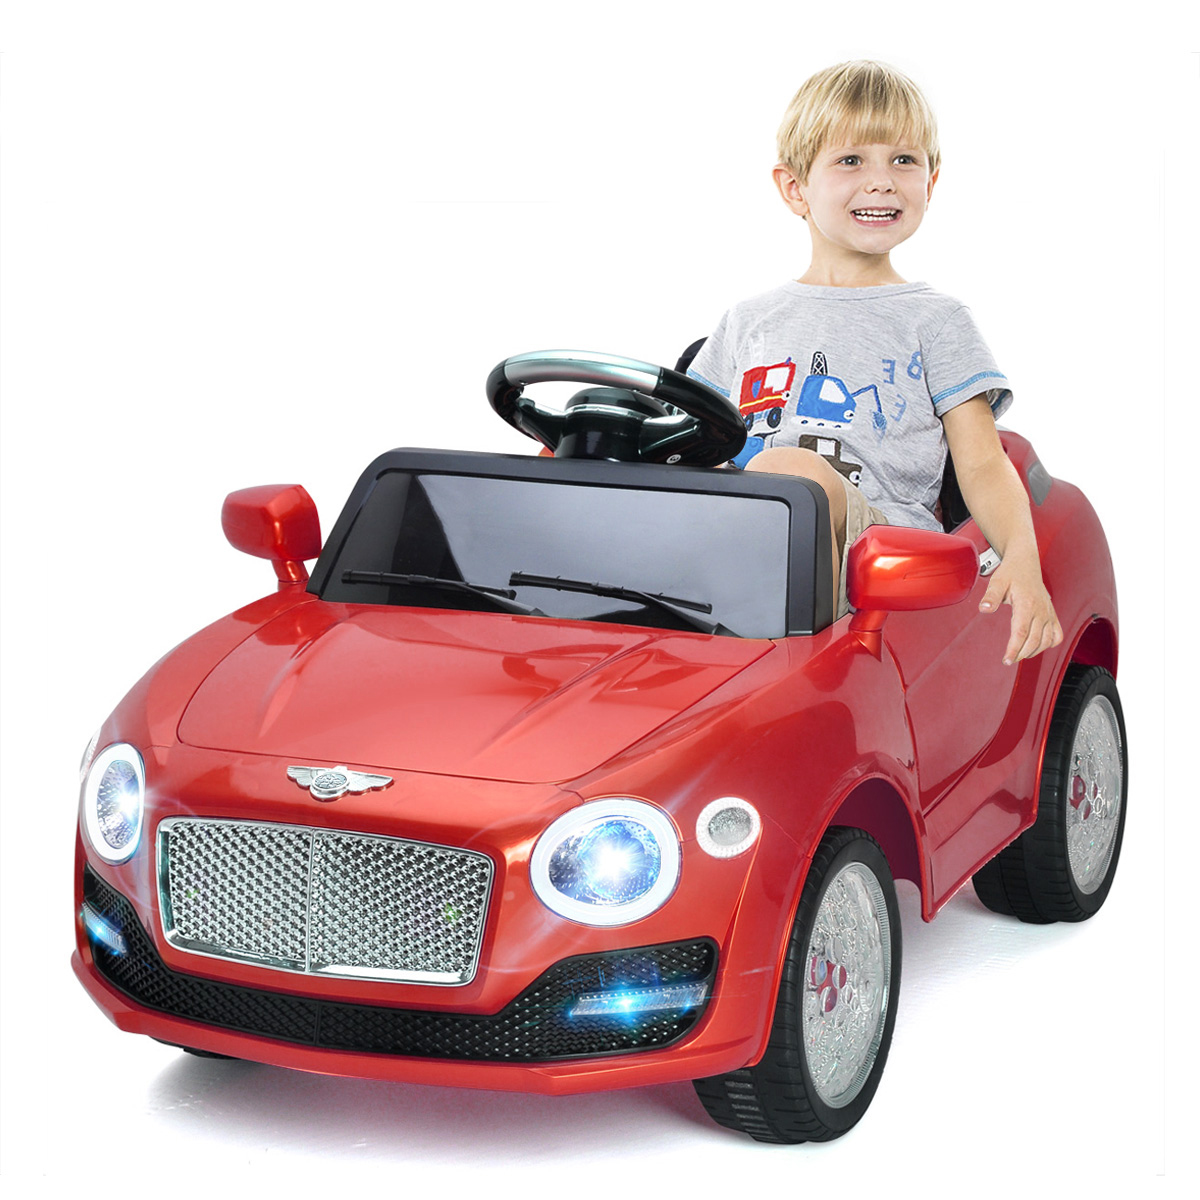 Costway 6V Kids Ride On Car Electric Battery Power RC Remote Control & Doors w/ MP3 Red